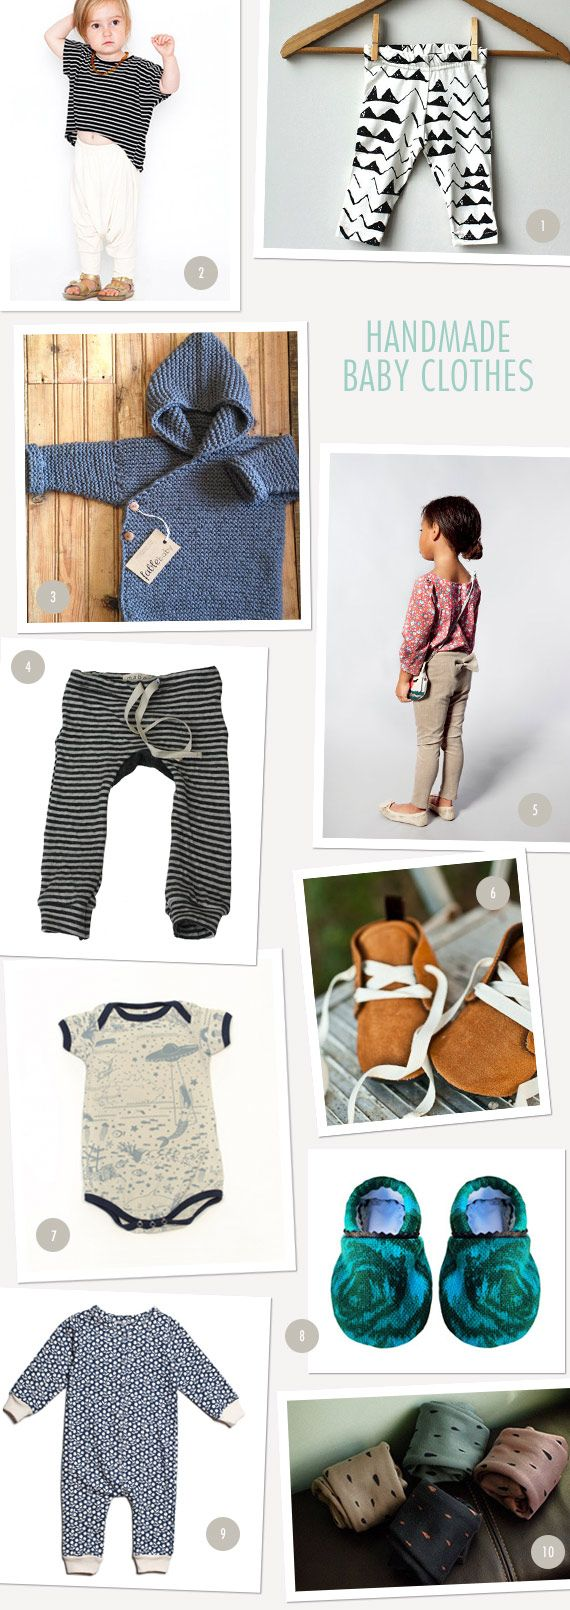 Thank you 100 Layer Cakelet for adding us to your feature - Handmade baby clothes round up. We really appreciate it.